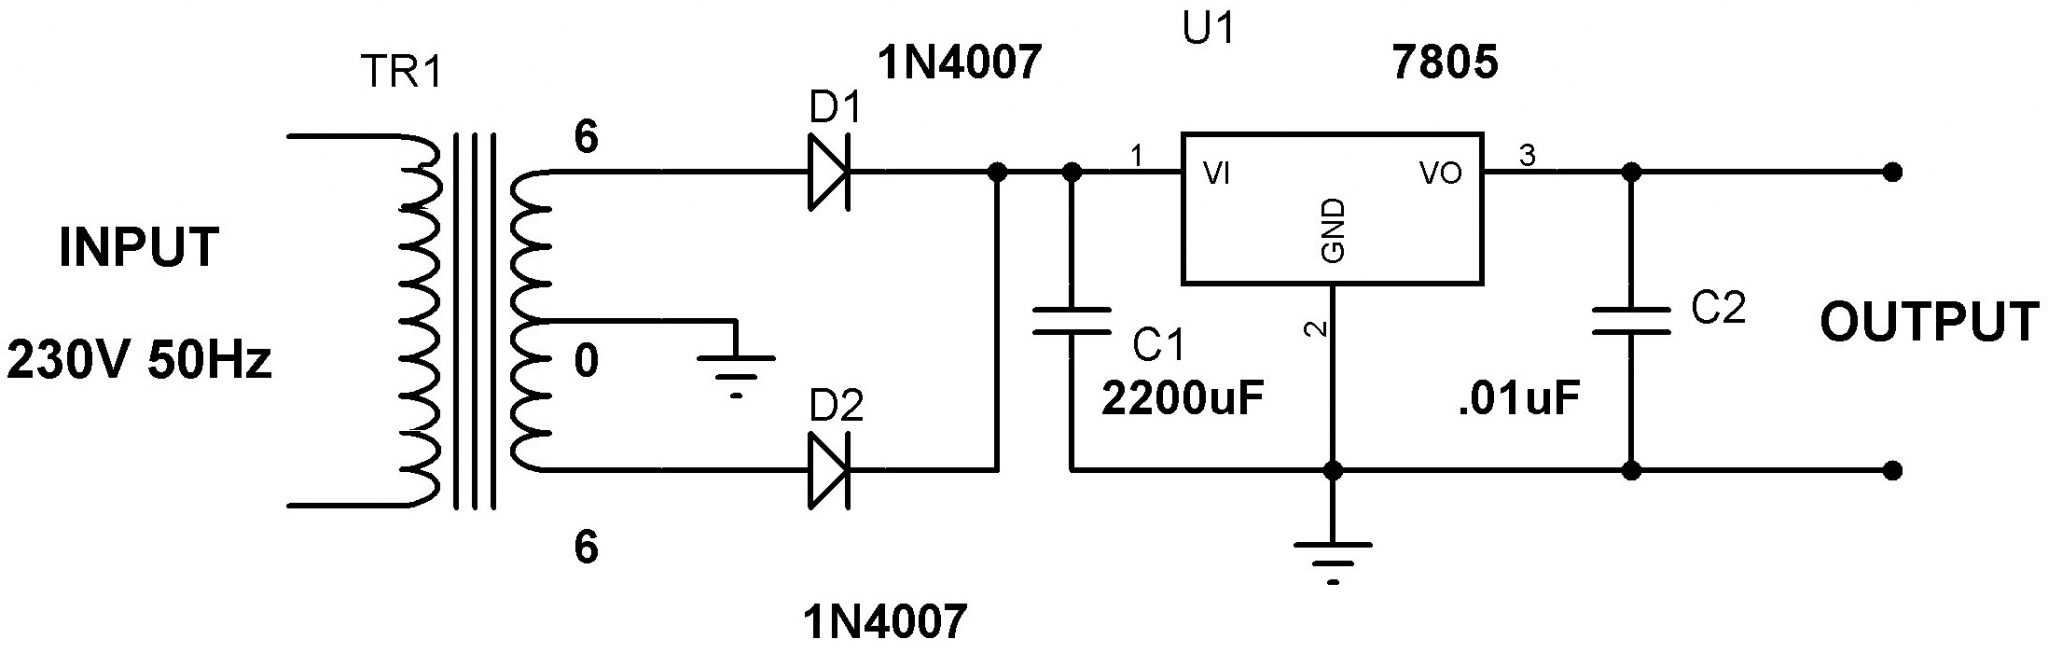 5v power supply using 7805 voltage regulator with design rh electrosome com power supply circuit diagram 12v 5a power supply circuit diagram using 7812